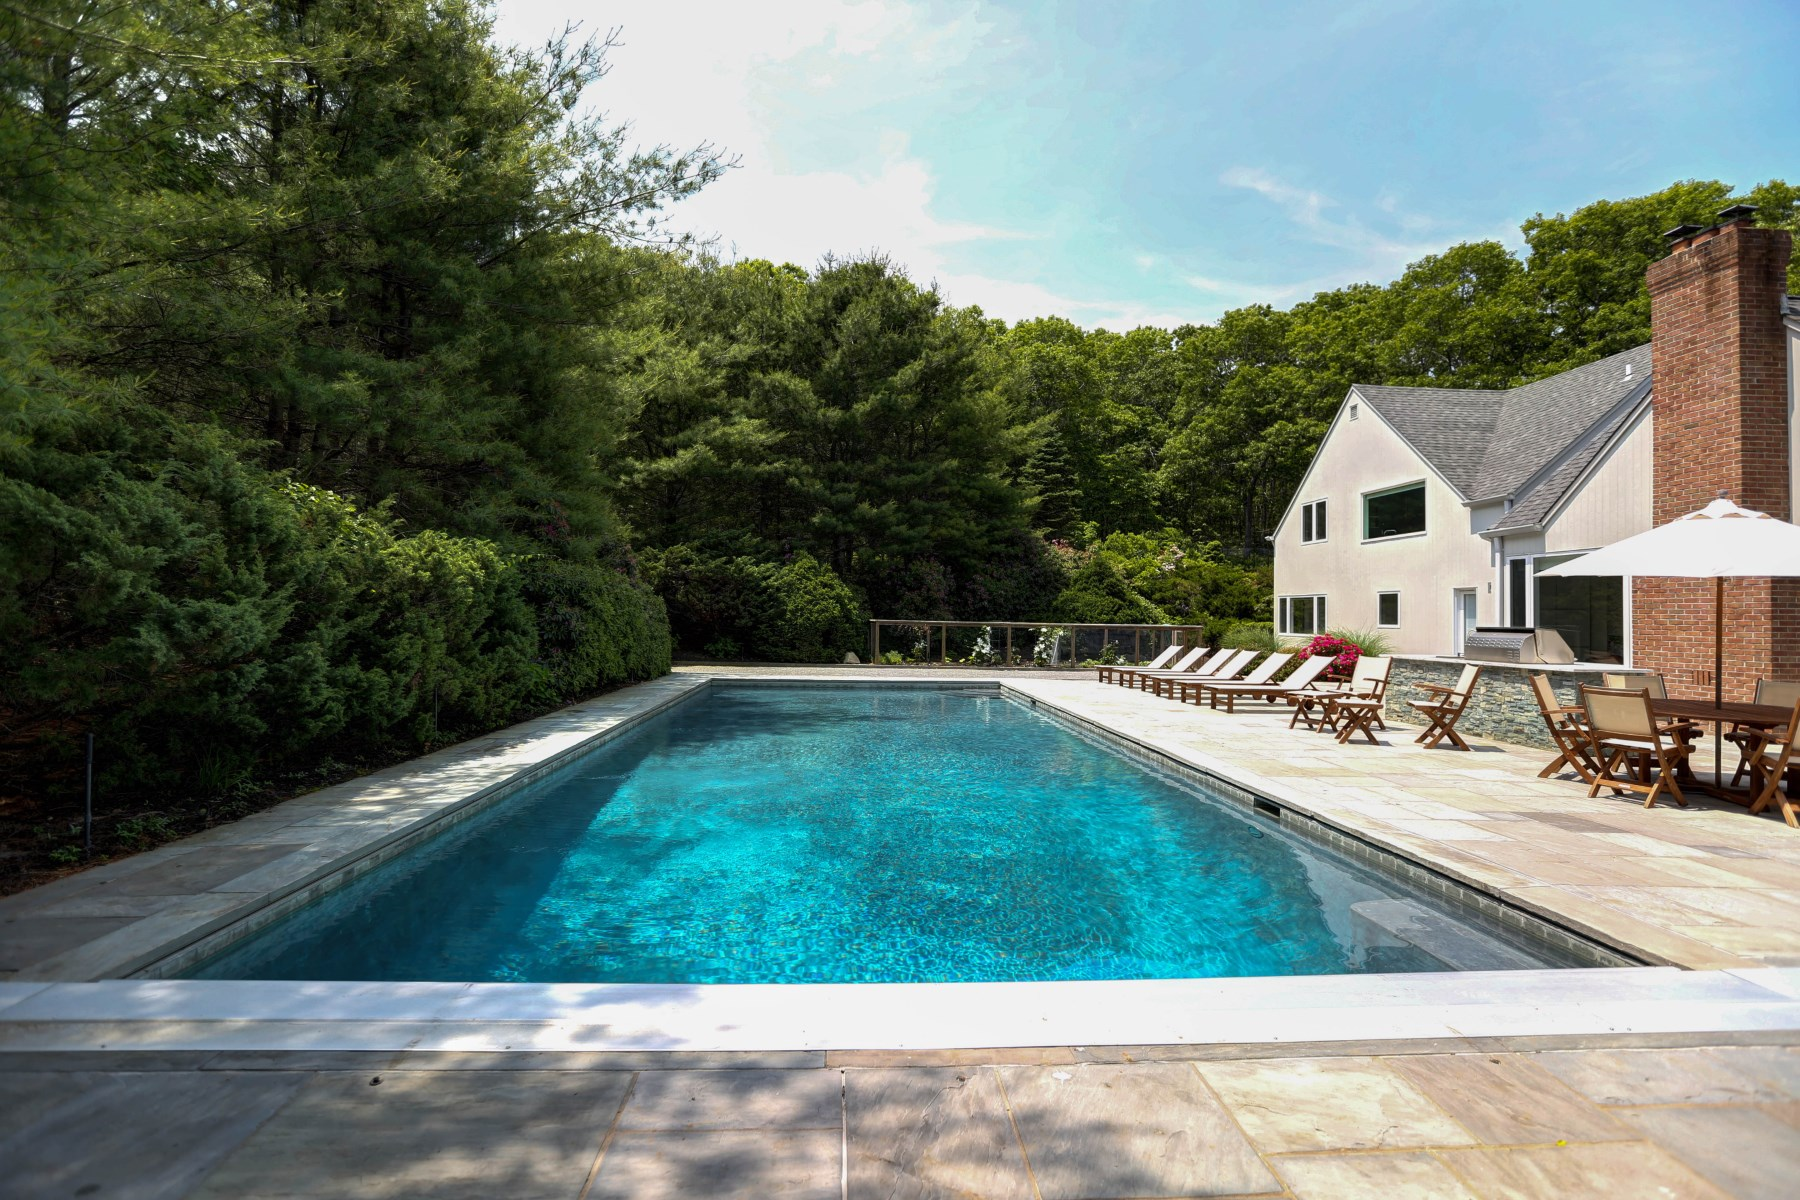 Maison unifamiliale pour l Vente à Chic Perfection with Privacy 122 Merchants Path Sag Harbor, New York, 11963 États-Unis